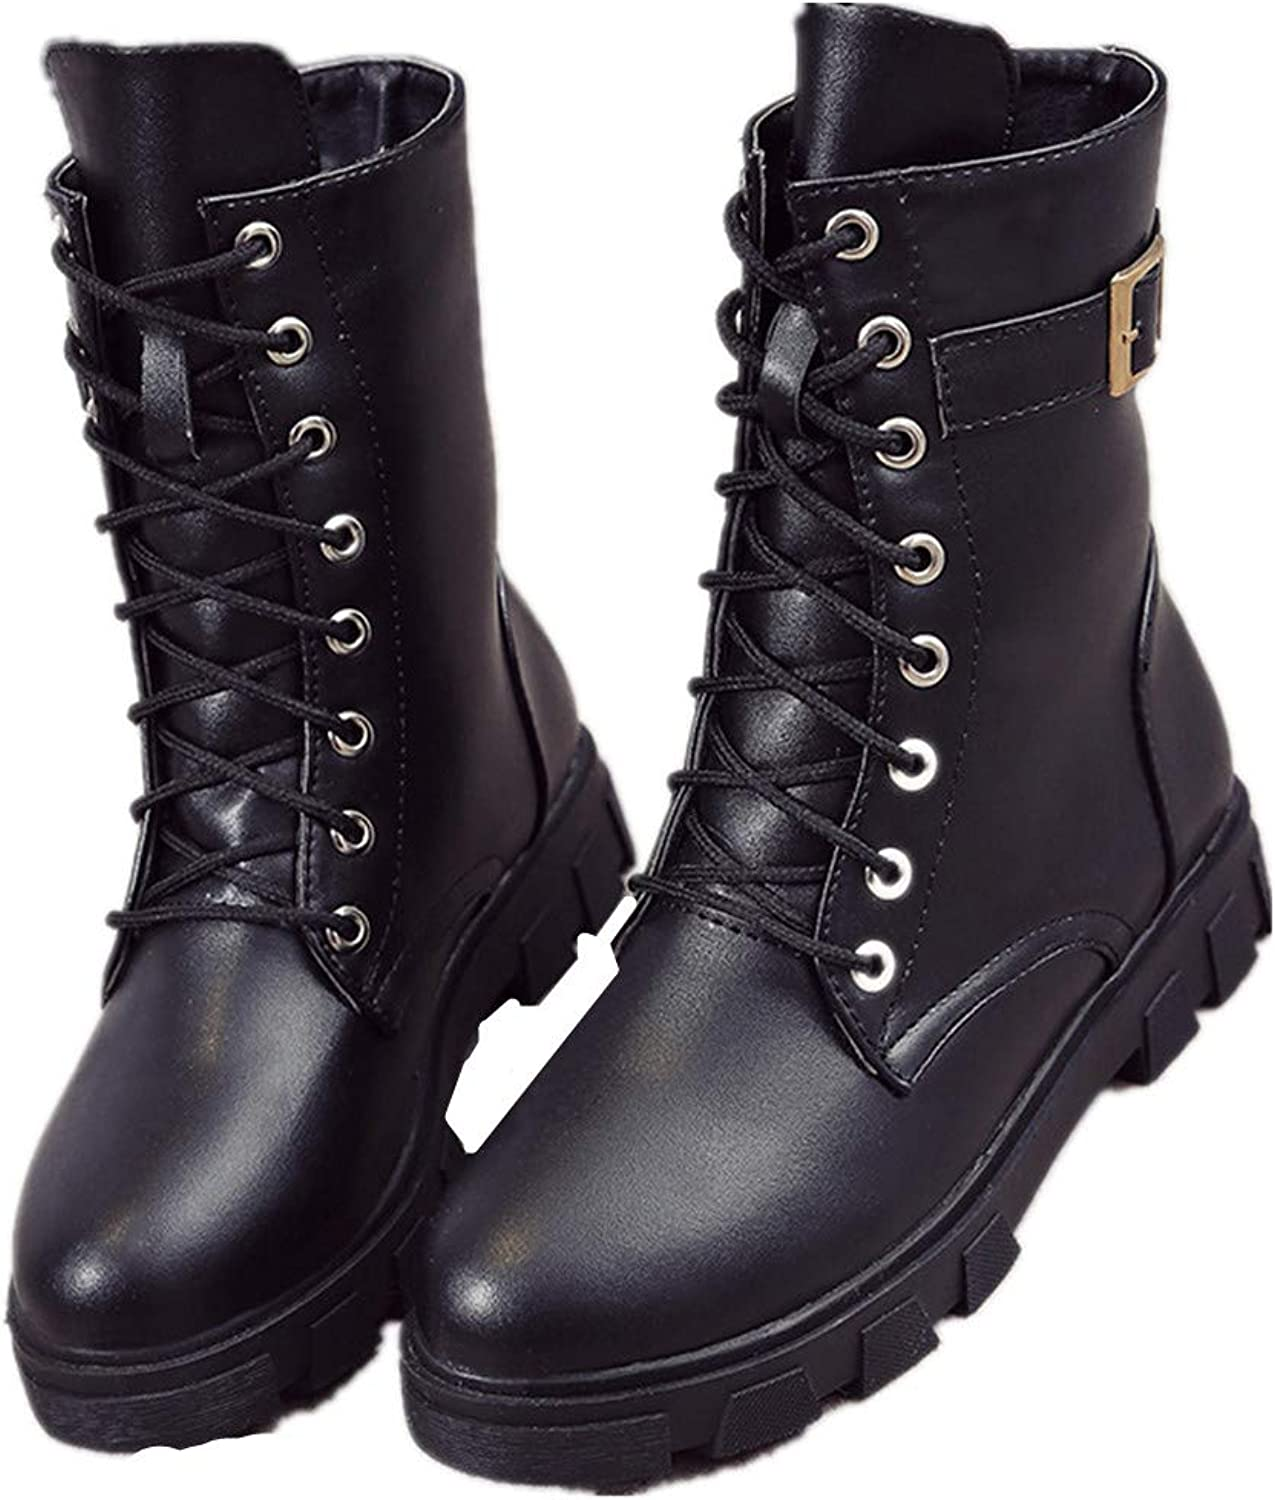 MIKA HOM Martin Boots Women's Autumn and Winter high top Boots New Motorcycle Boots